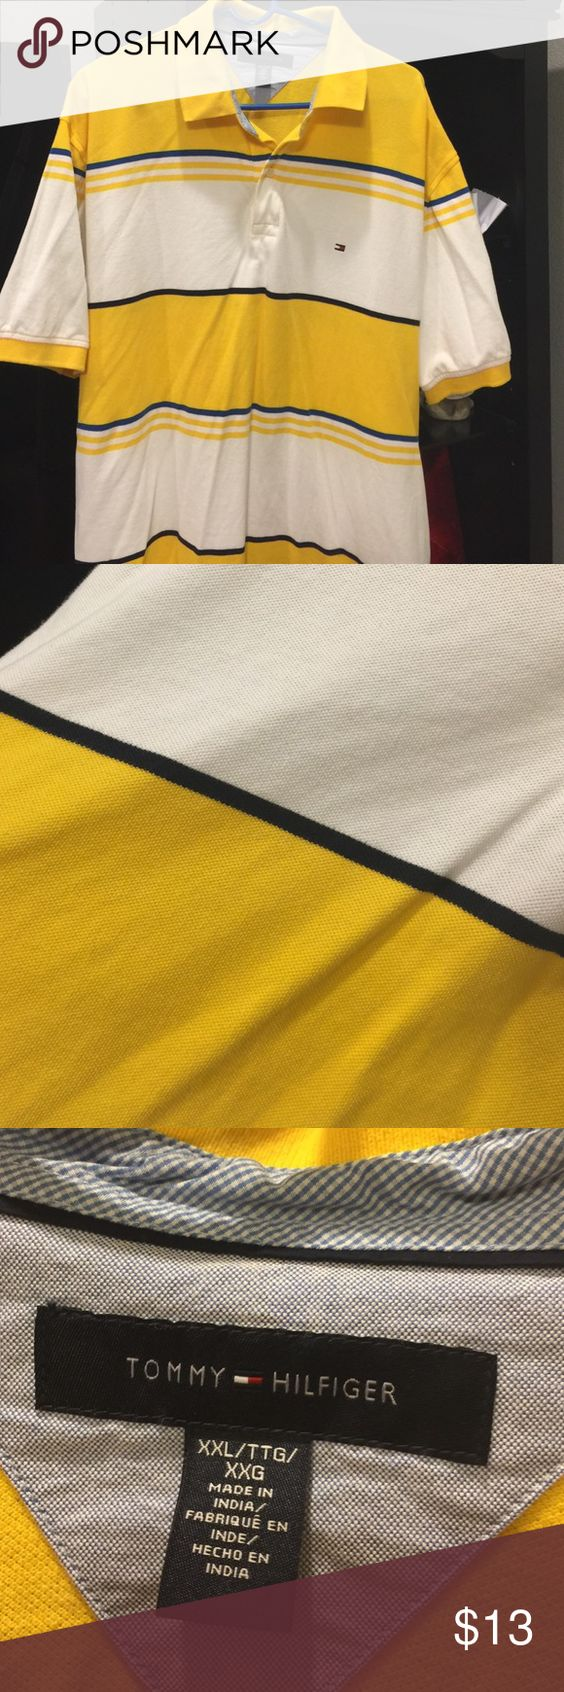 Men's Tommy Hilfiger EUC. Wore maybe twice. 100% cotton. Yellow and white with blue, yellow and black stripes. Offers welcomed 😊 Tommy Hilfiger Tops